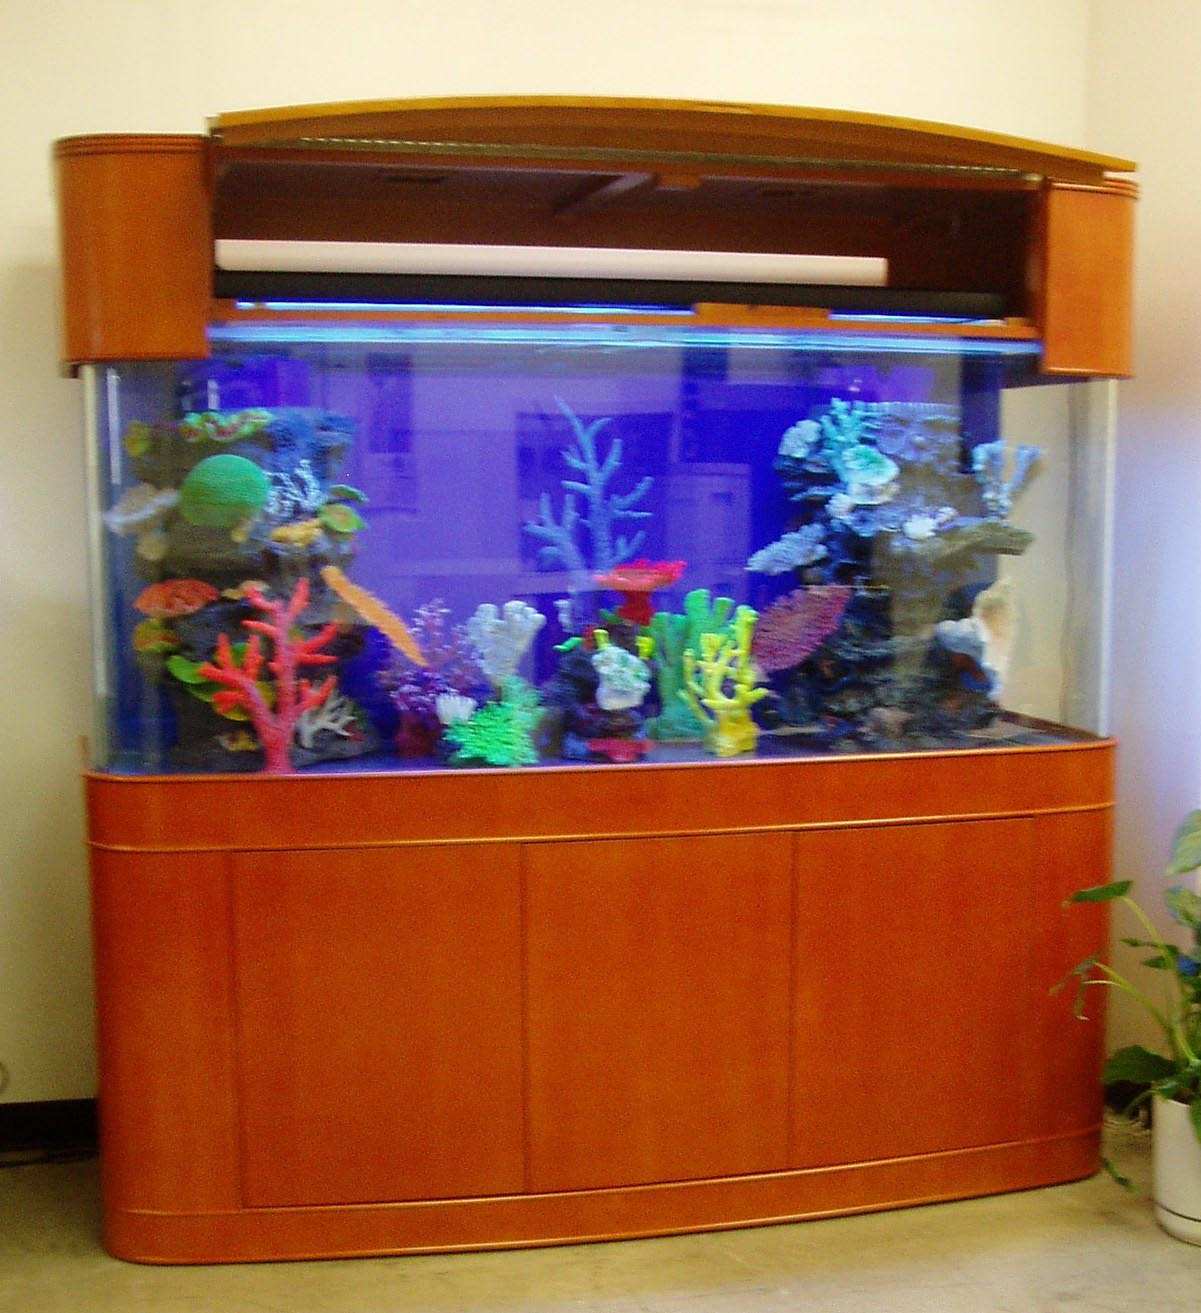 120 gallon glass aquarium aquarium design ideas